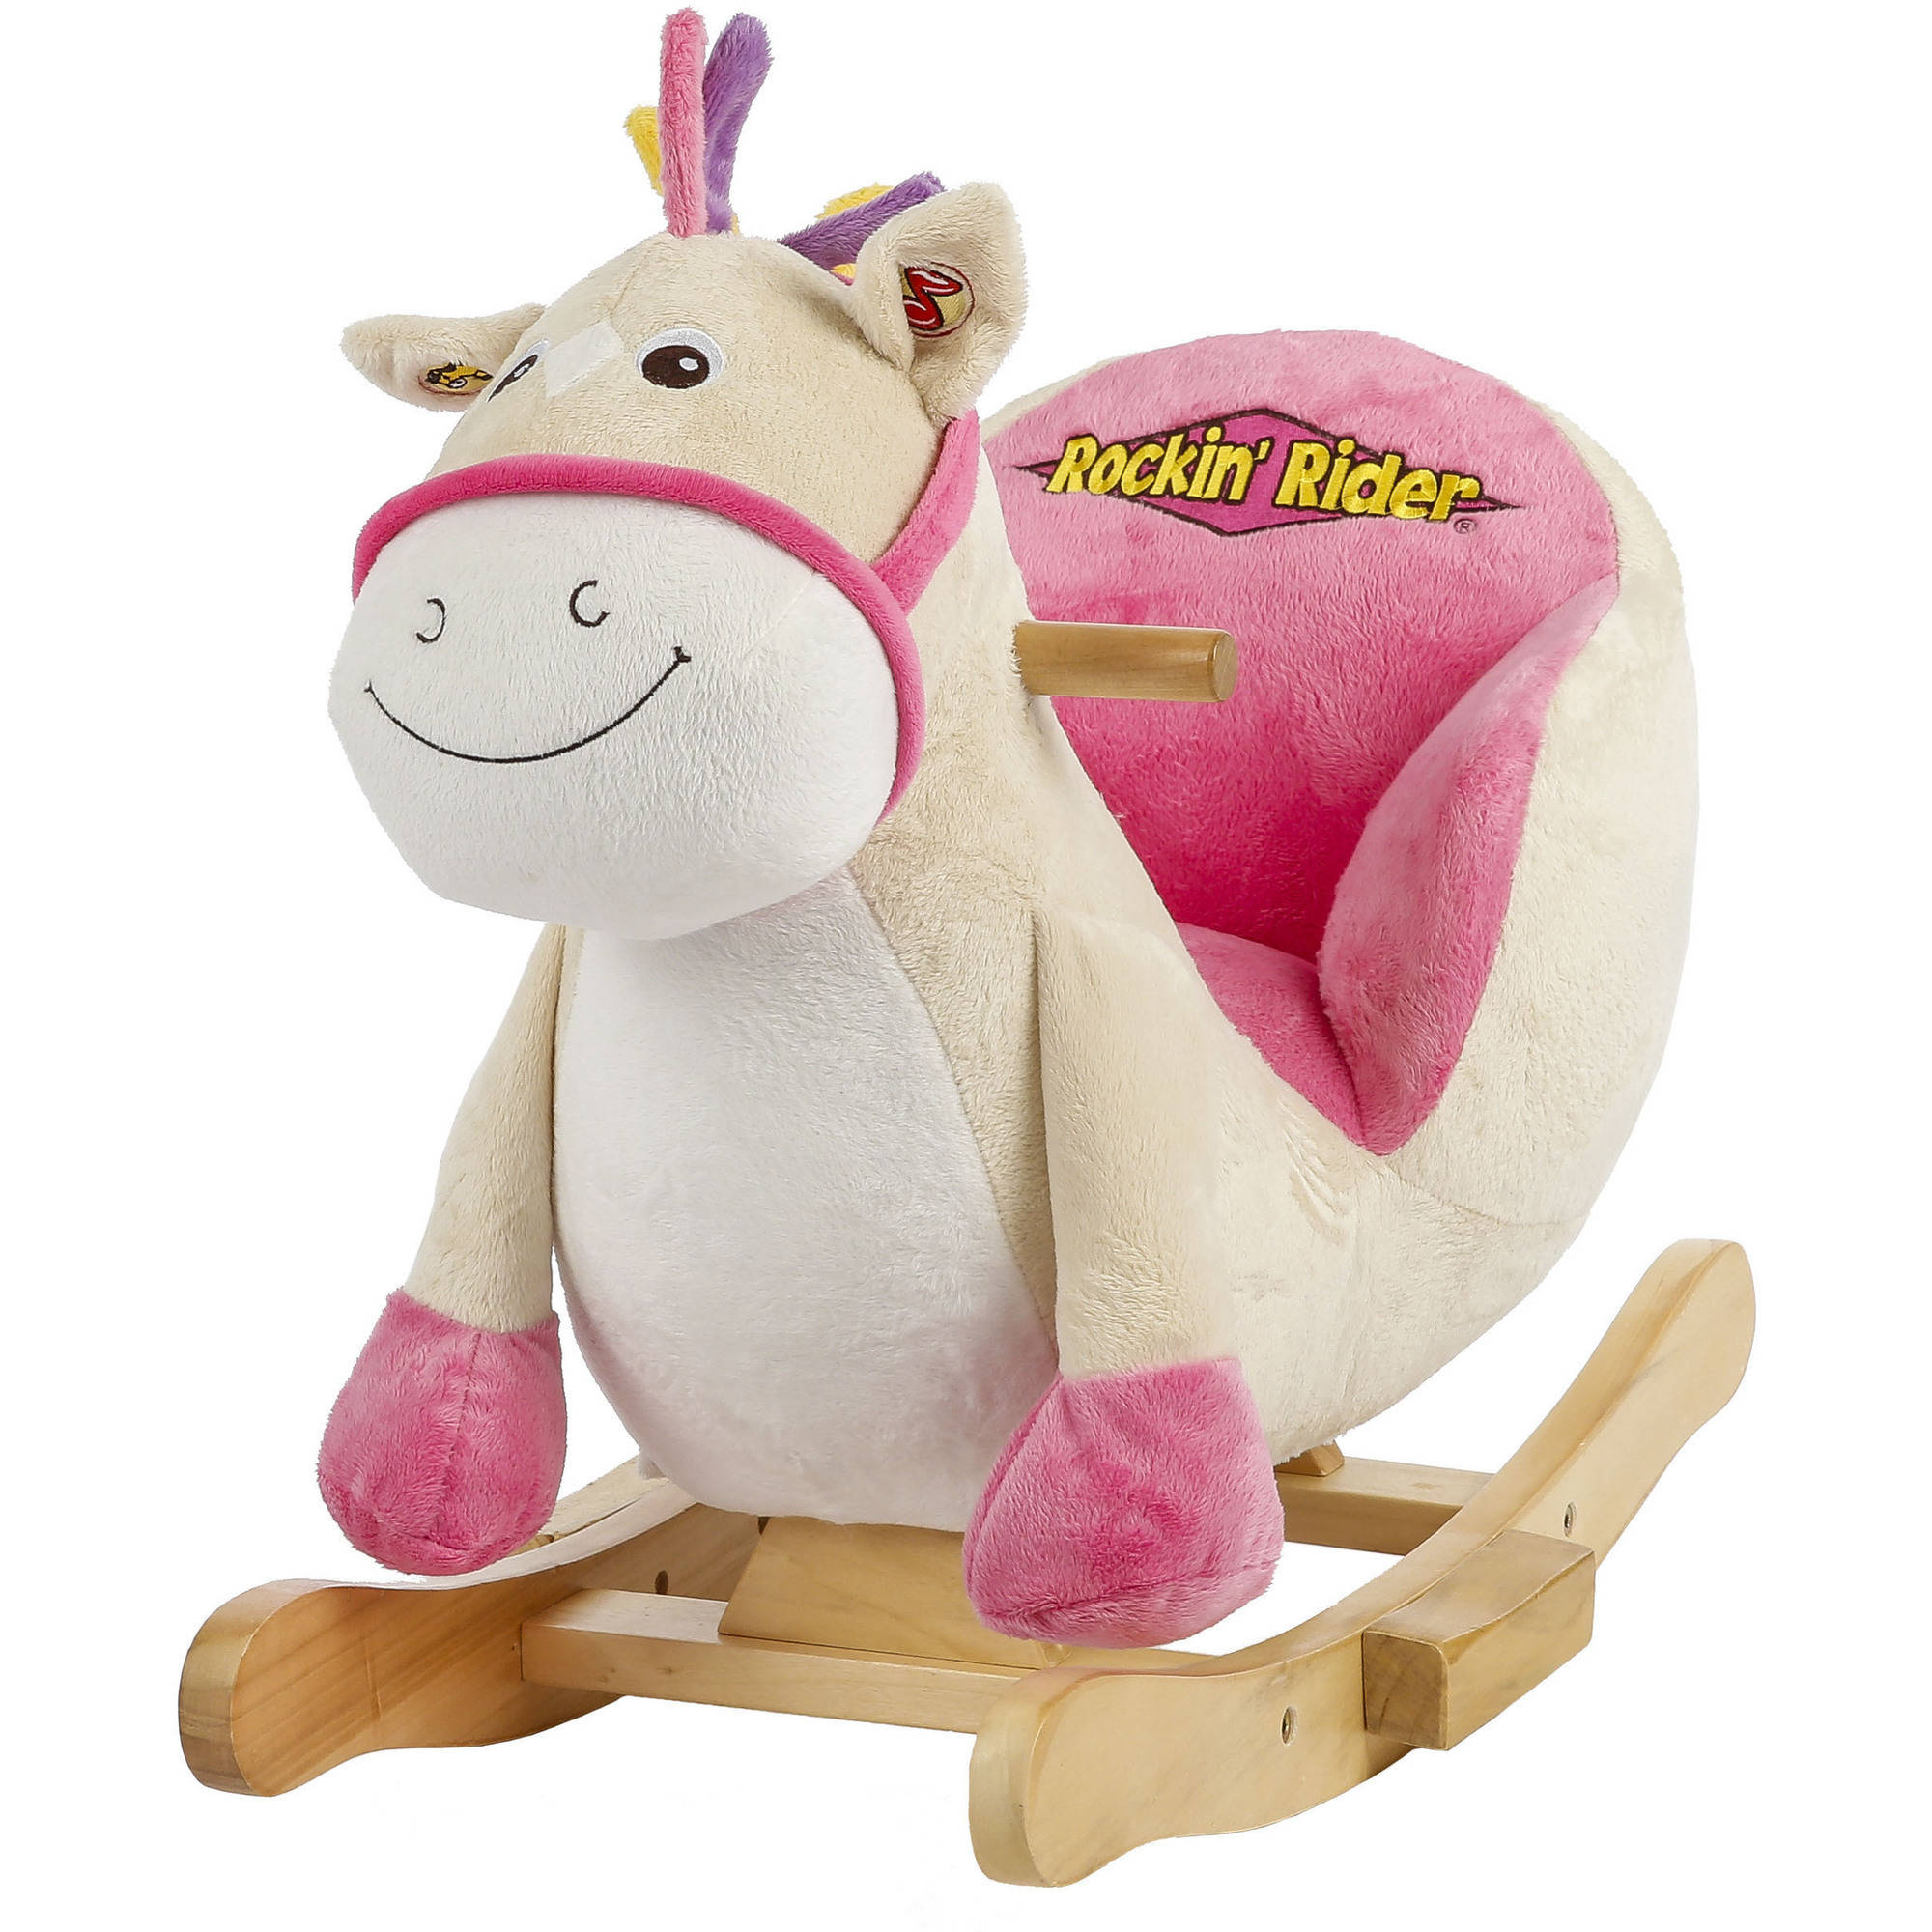 rocking horses for toddlers - rockin' rider giggles baby rocker